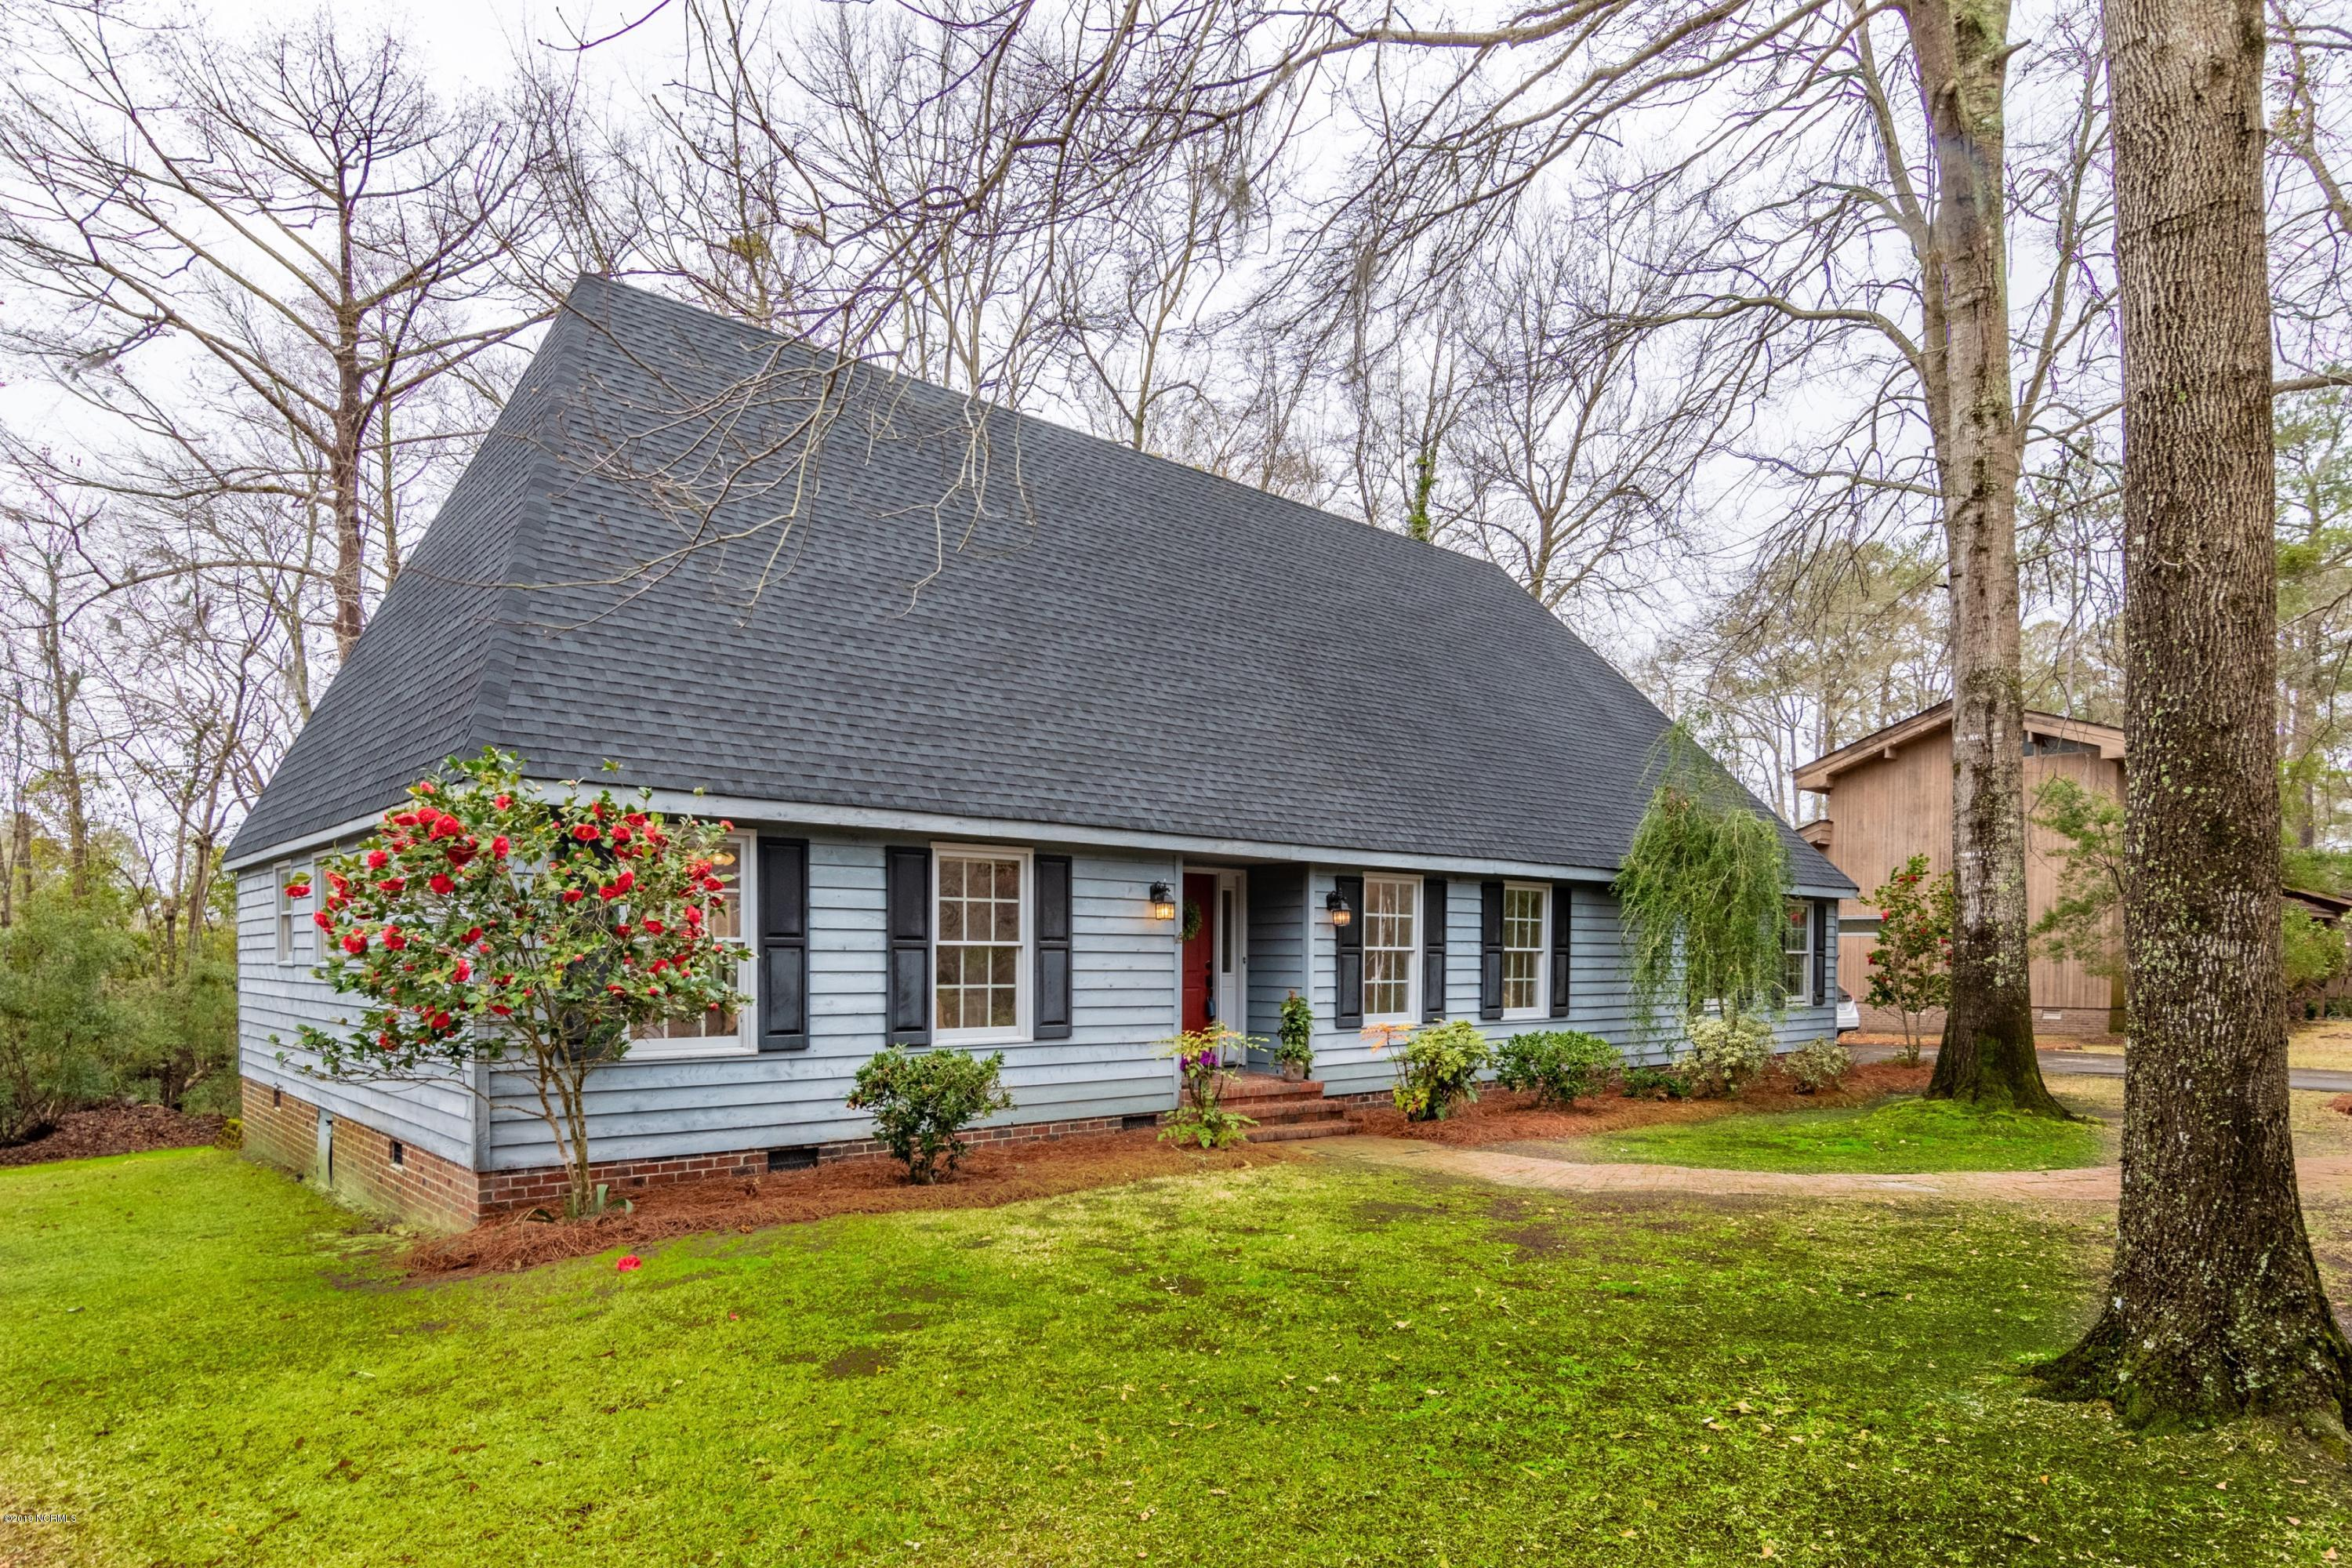 109 Riverview Drive, Washington, North Carolina 27889, 3 Bedrooms Bedrooms, 10 Rooms Rooms,2 BathroomsBathrooms,Single family residence,For sale,Riverview,100156387